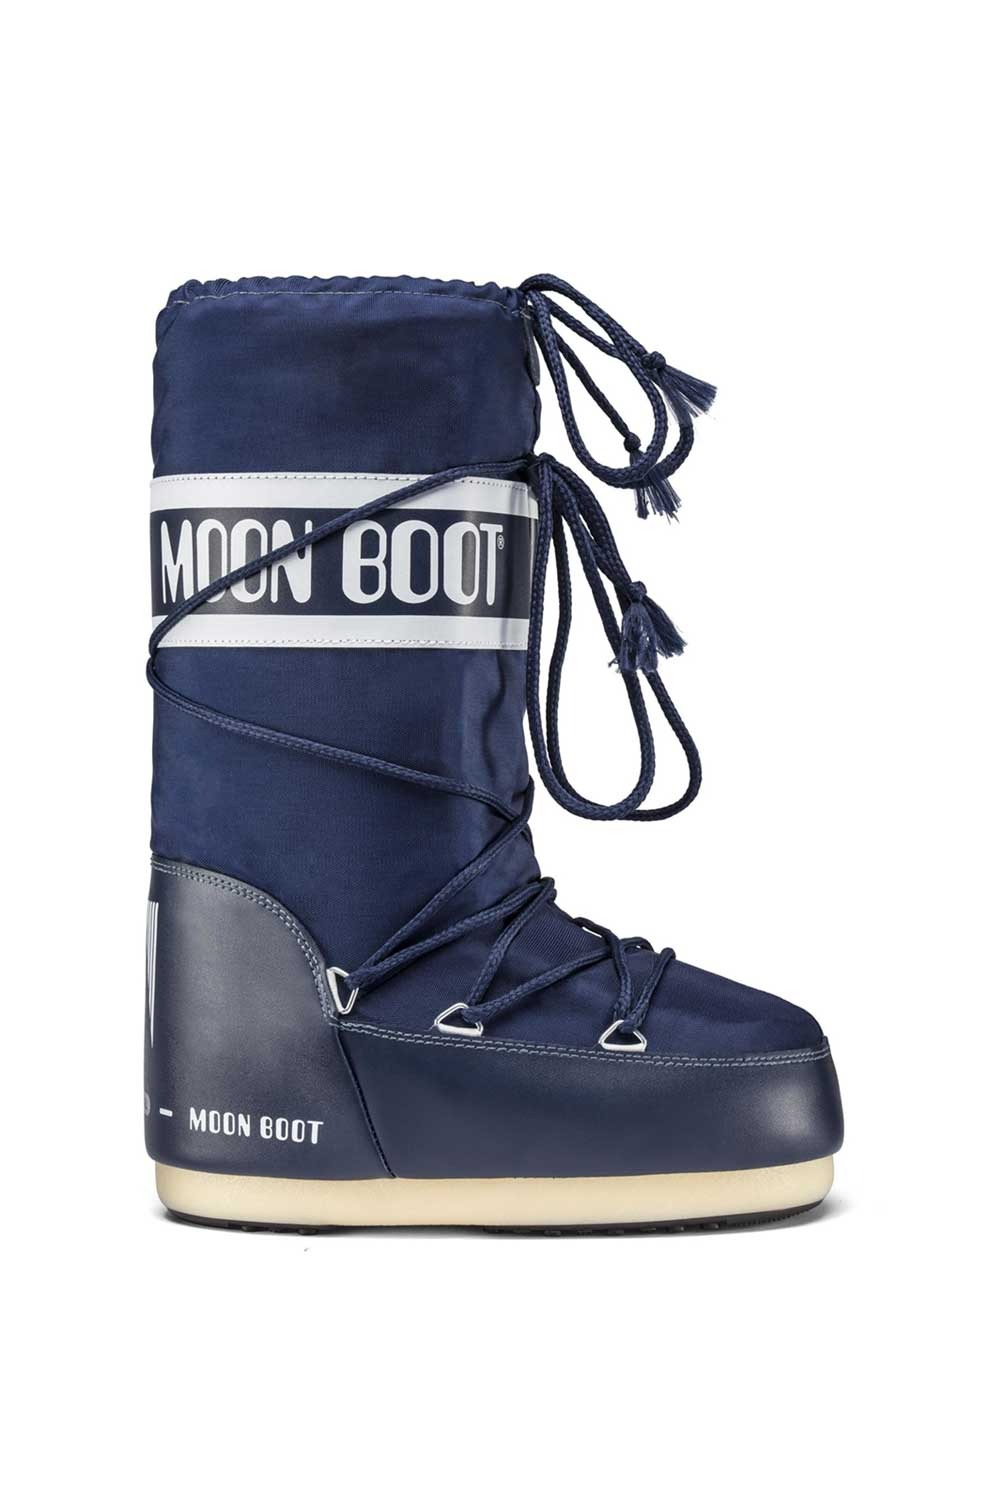 문부츠 여성 방한부츠 나일론 5MQ891DN / DENIM BLUE MOONBOOT WMS MOON BOOT NYLON_A6MQ891DN